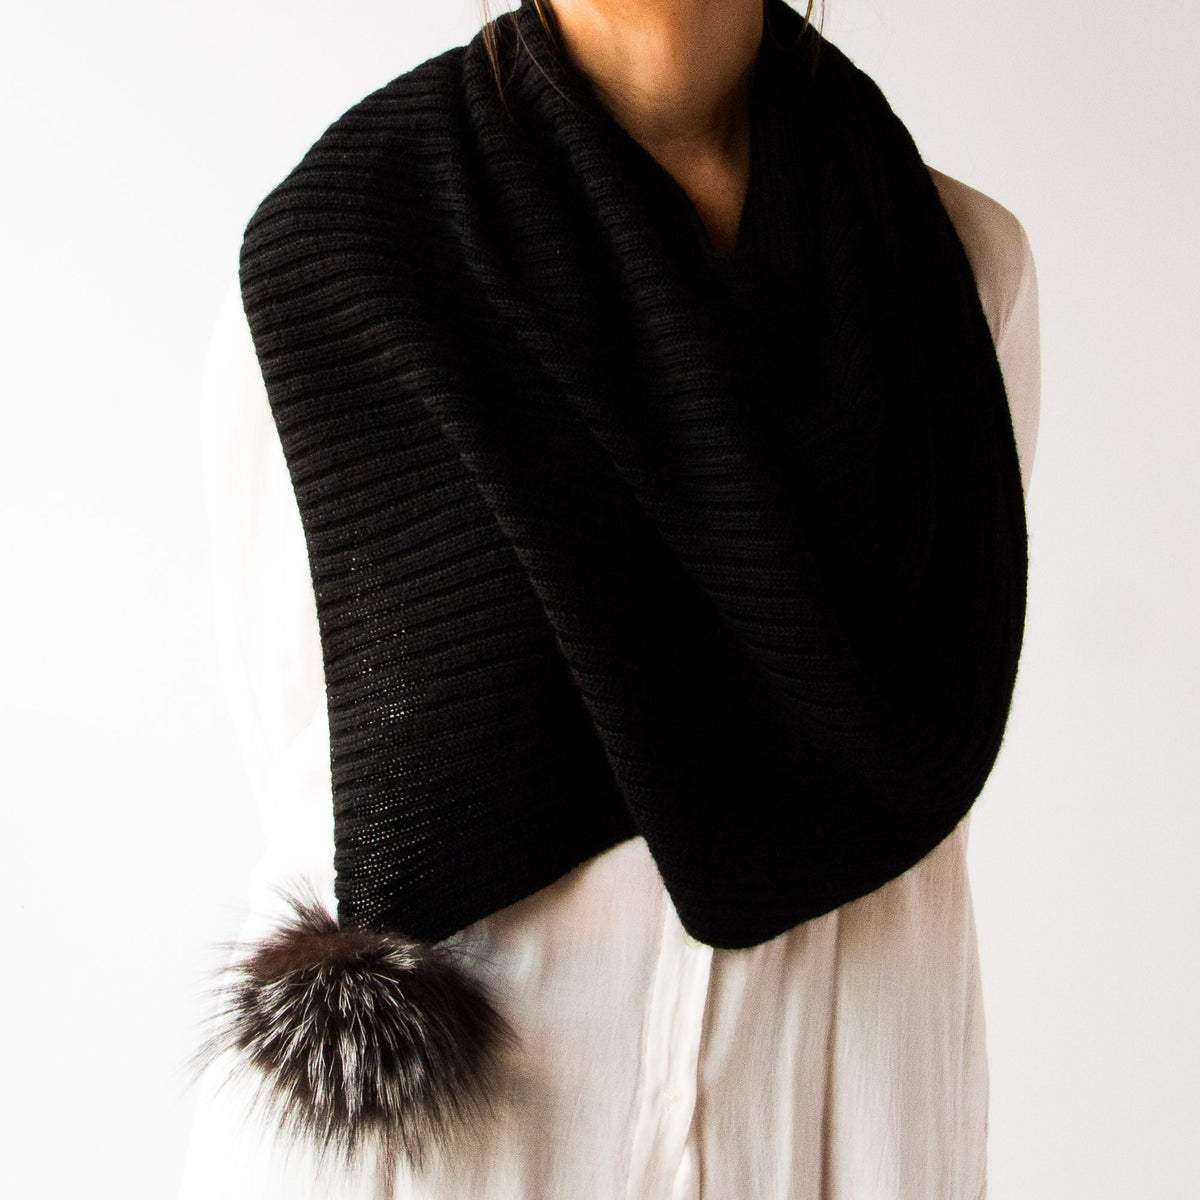 Front View of a Woman Wearing a Black Handmade 100% Baby Alpaca Wool Shawl / Poncho Style - Sold by Chic & Basta